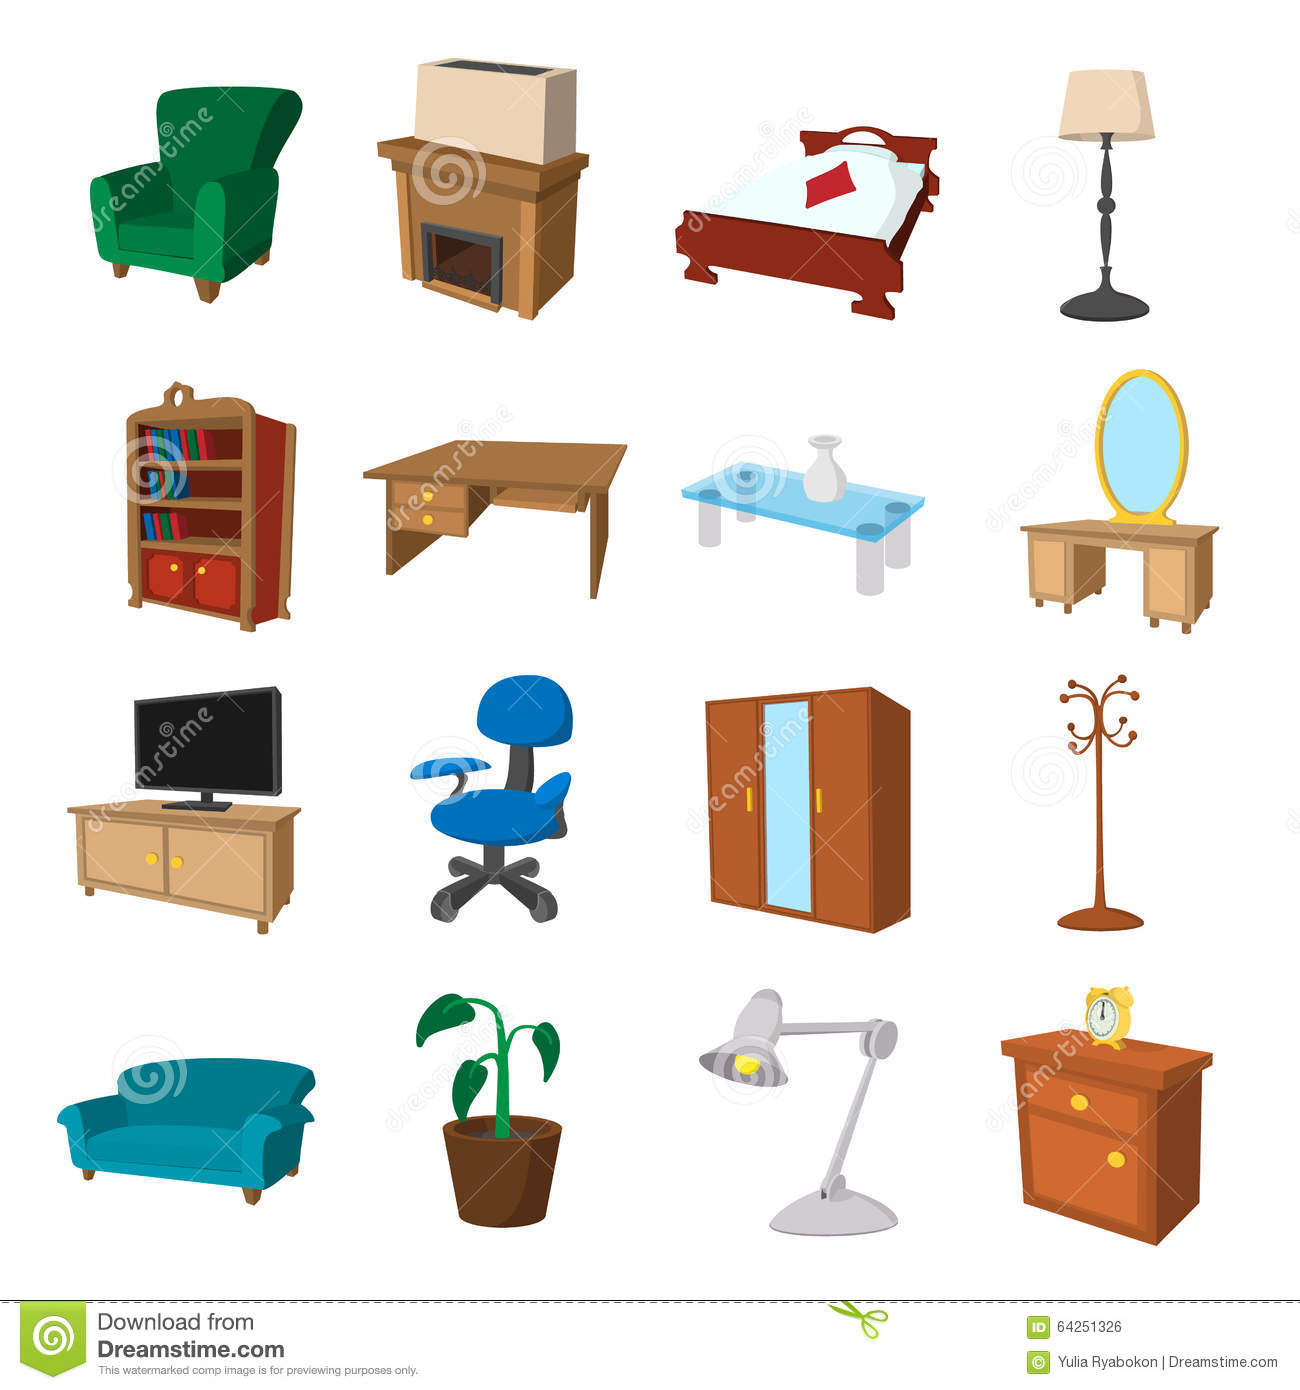 Furniture Cartoon Icons Set Stock Vector - Illustration of living ...